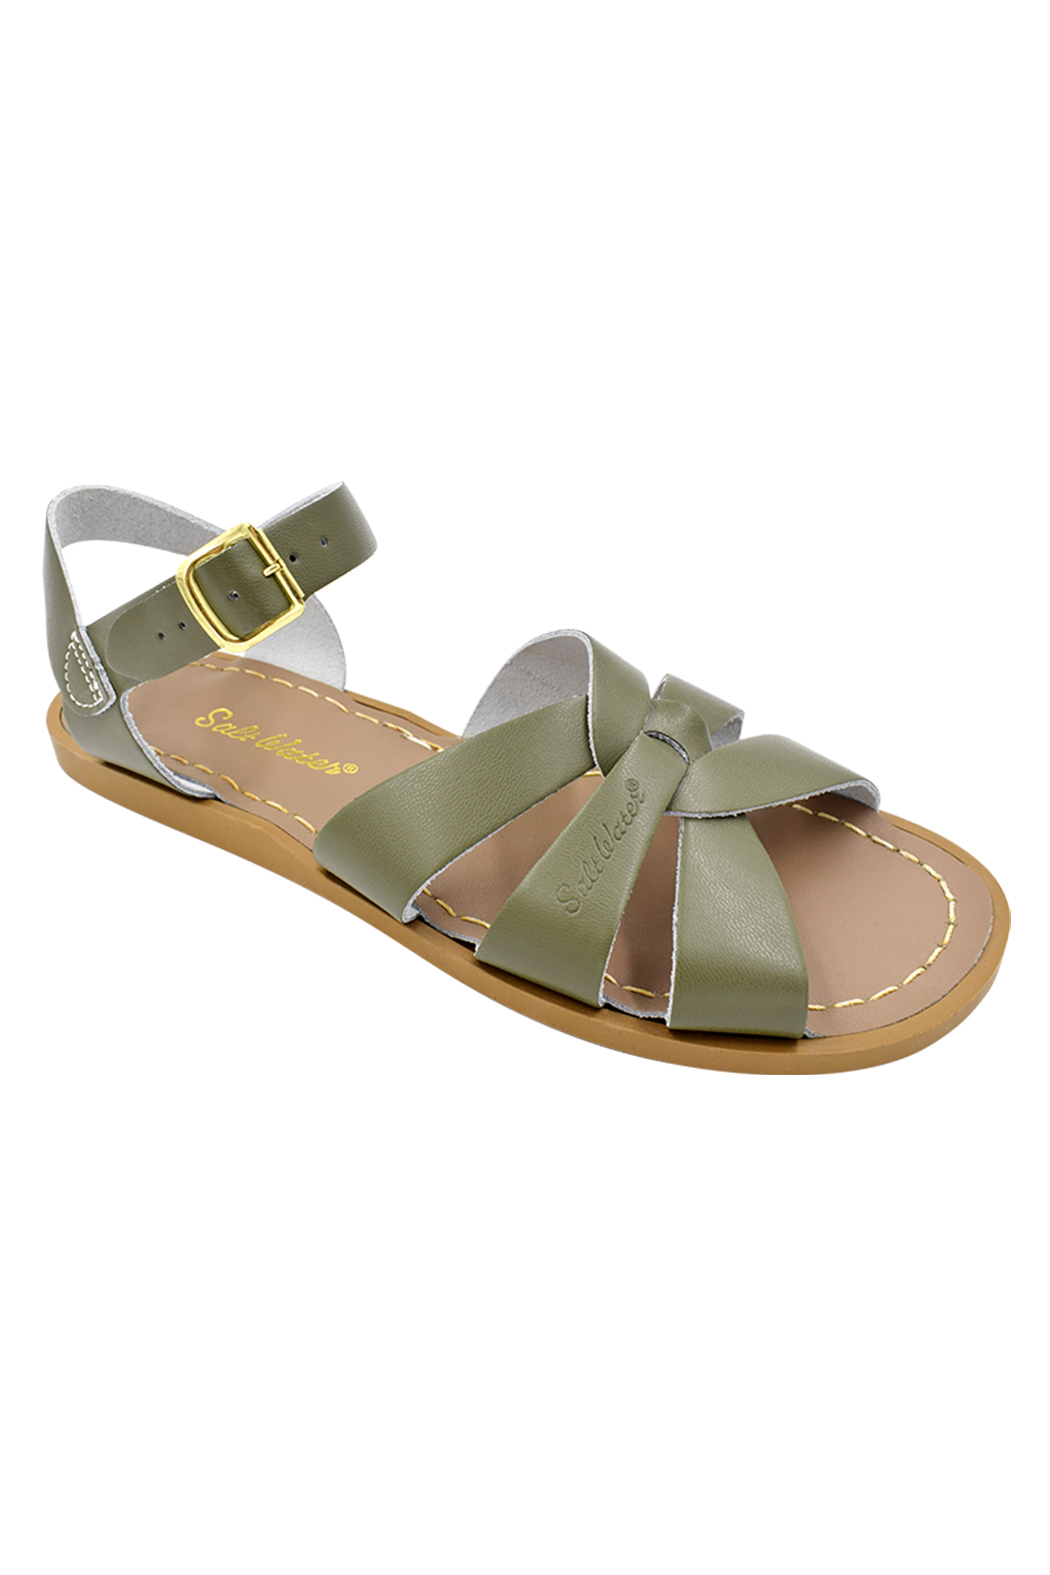 Hoy Shoes Salt Water Sandals Youth/Adult - Front Cropped Image